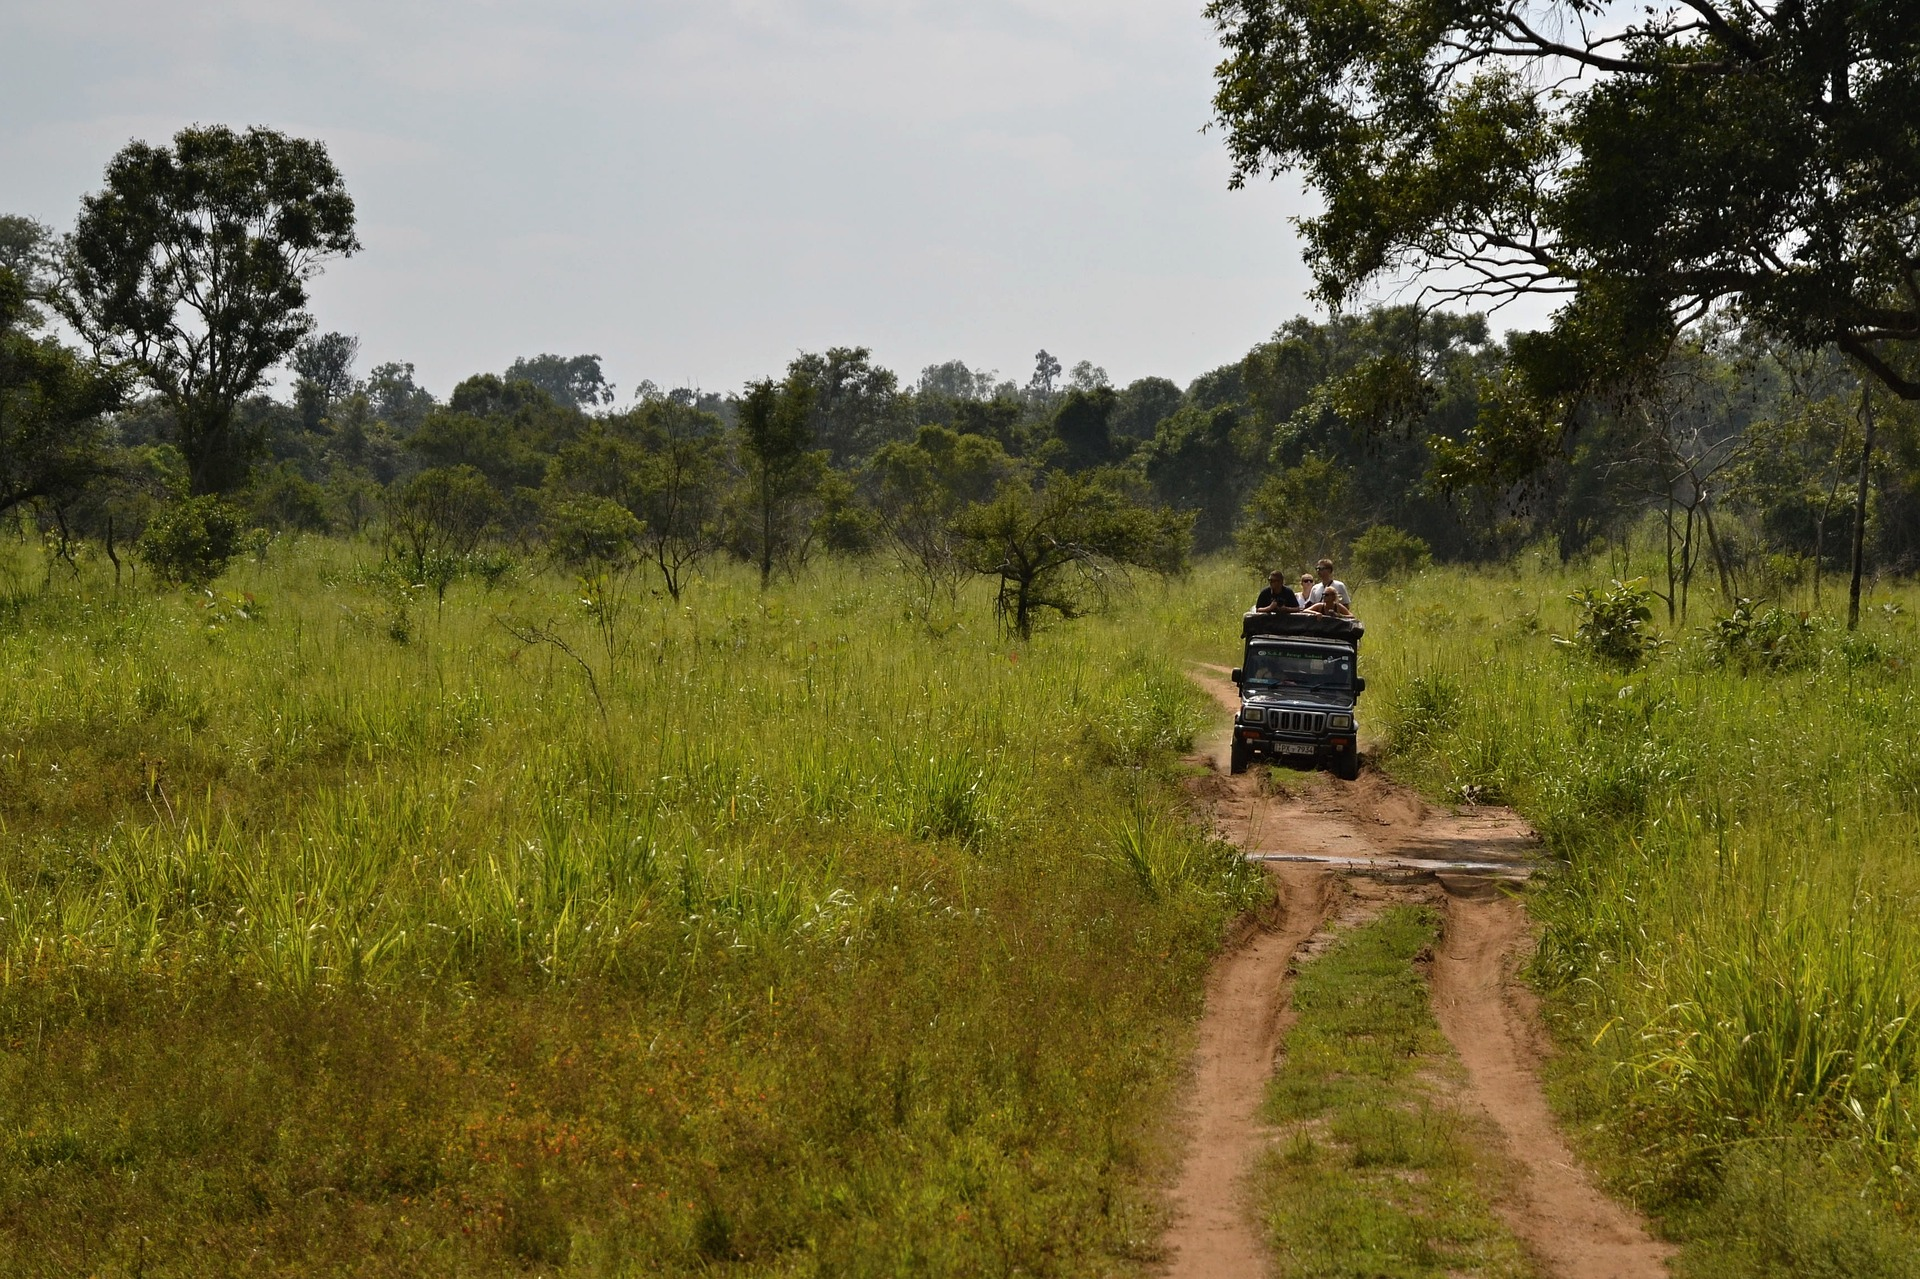 Types of Safaris Available at Pench and Their Timings